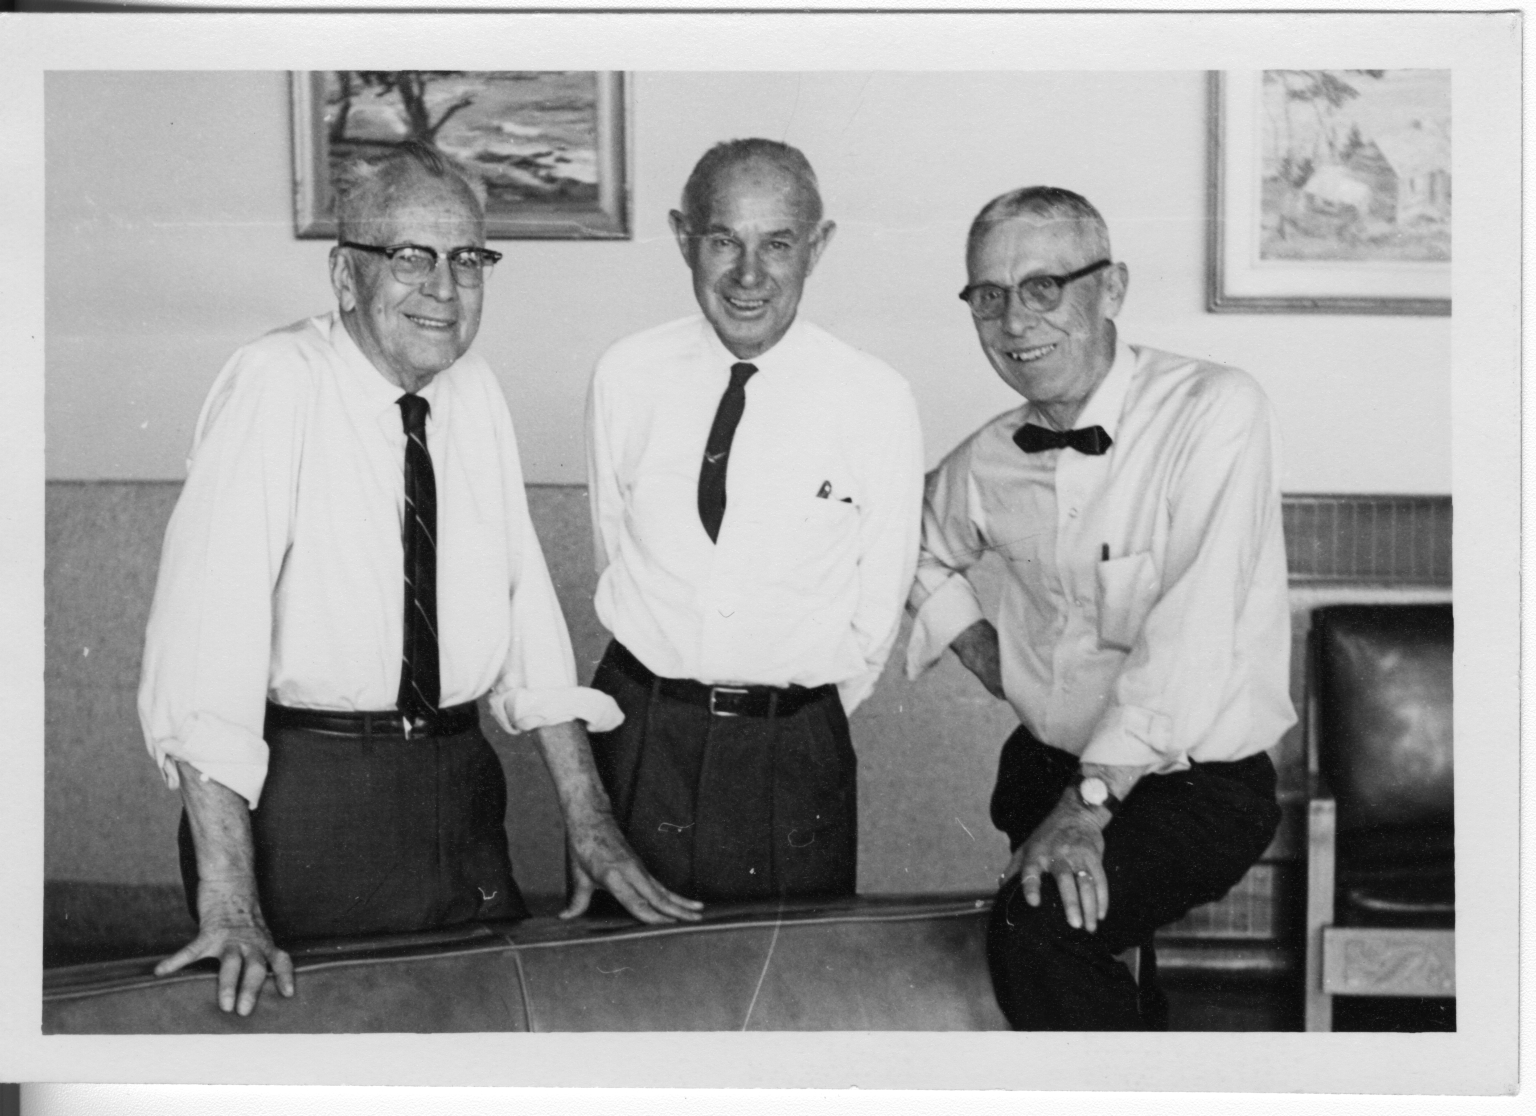 Alfred M. Bailey, Robert J. Niedrach and Fred W. Kent